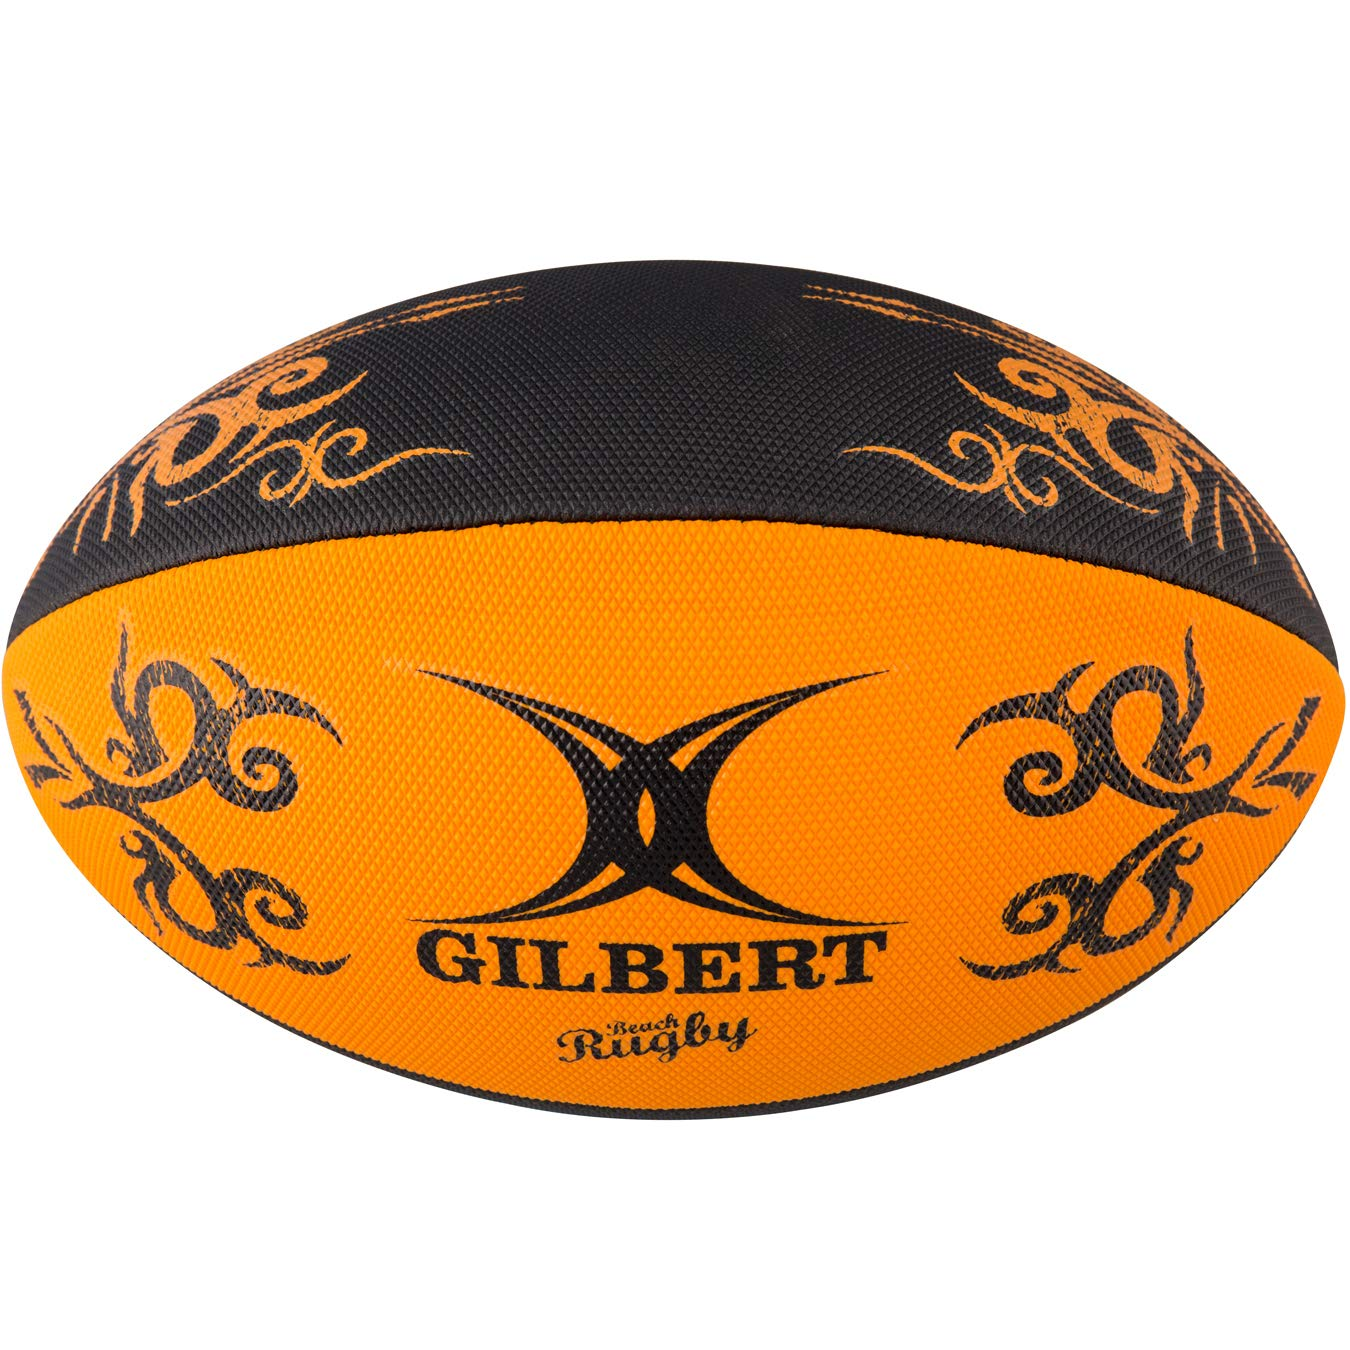 GILBERT Ballon de Beach rugby - Orange - Taille 4: Amazon.es ...